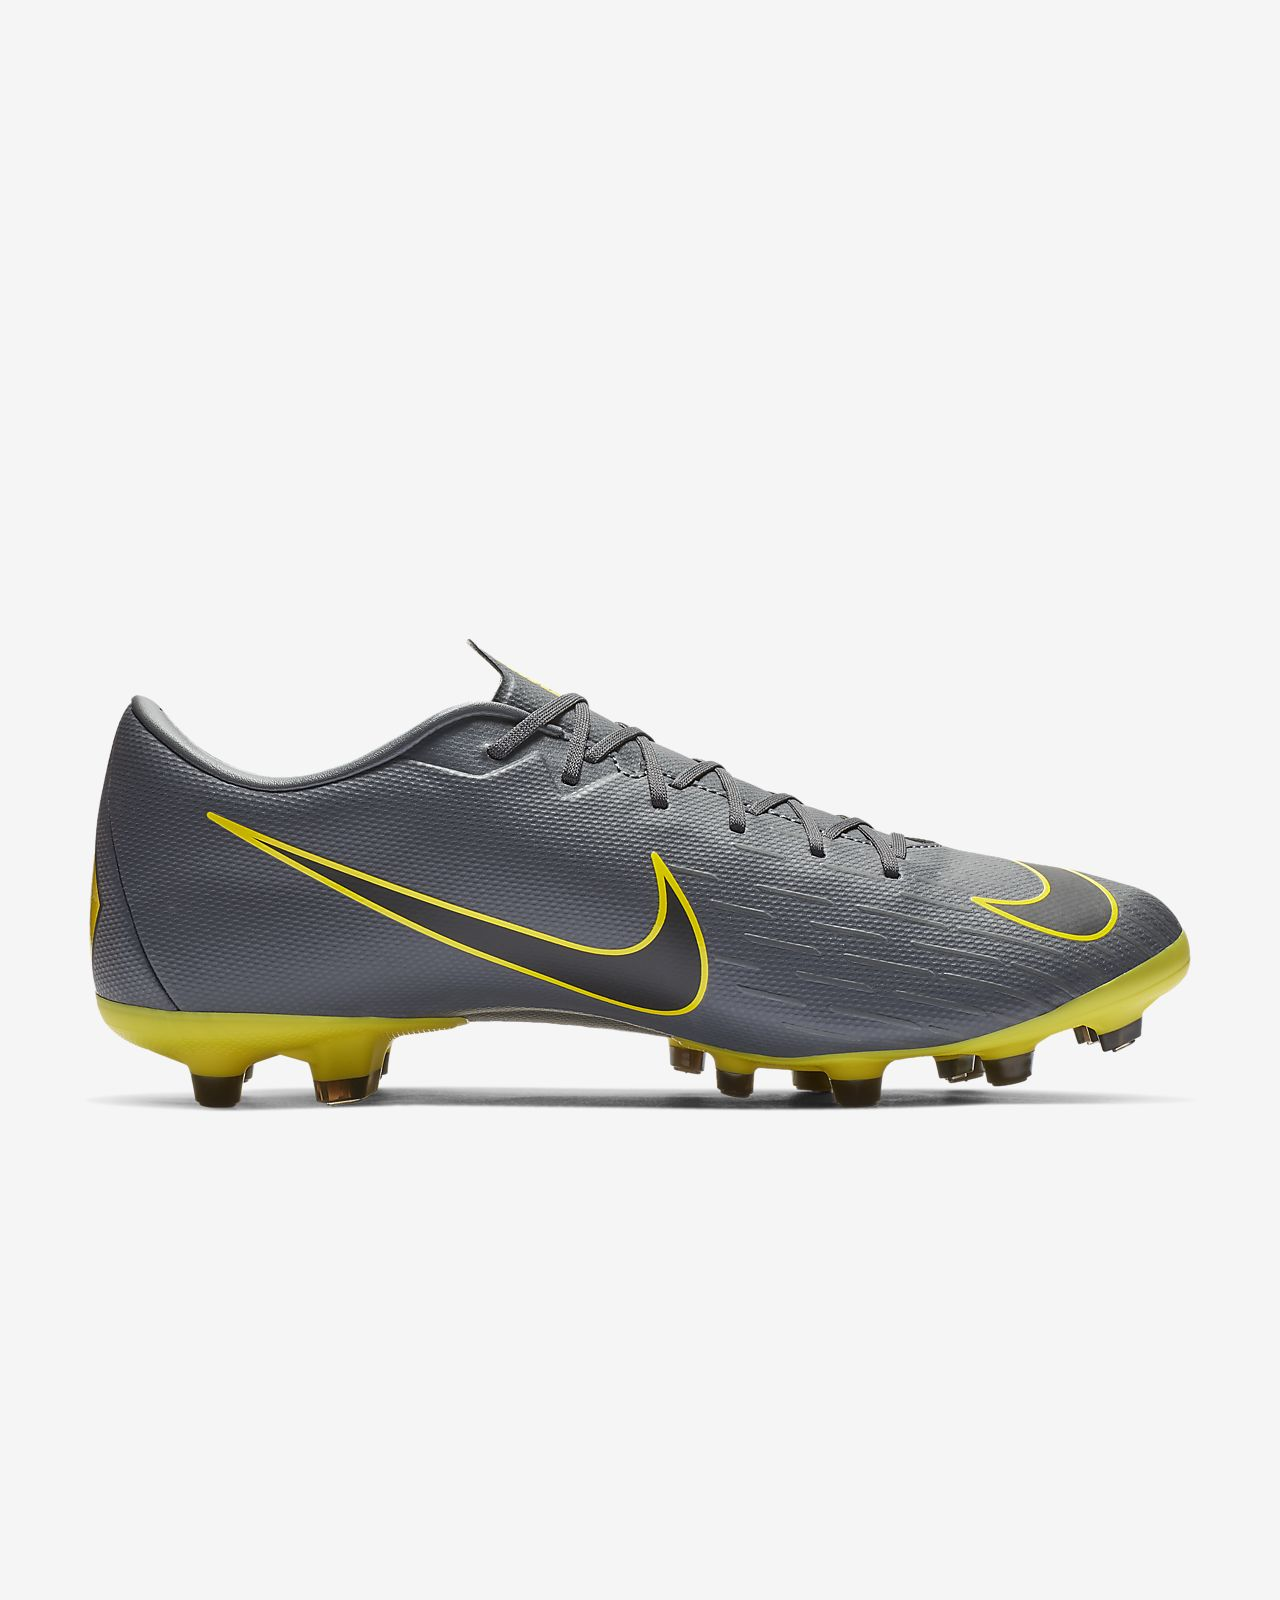 16dd1ba128c Nike Vapor 12 Academy MG Multi-Ground Soccer Cleat. Nike.com